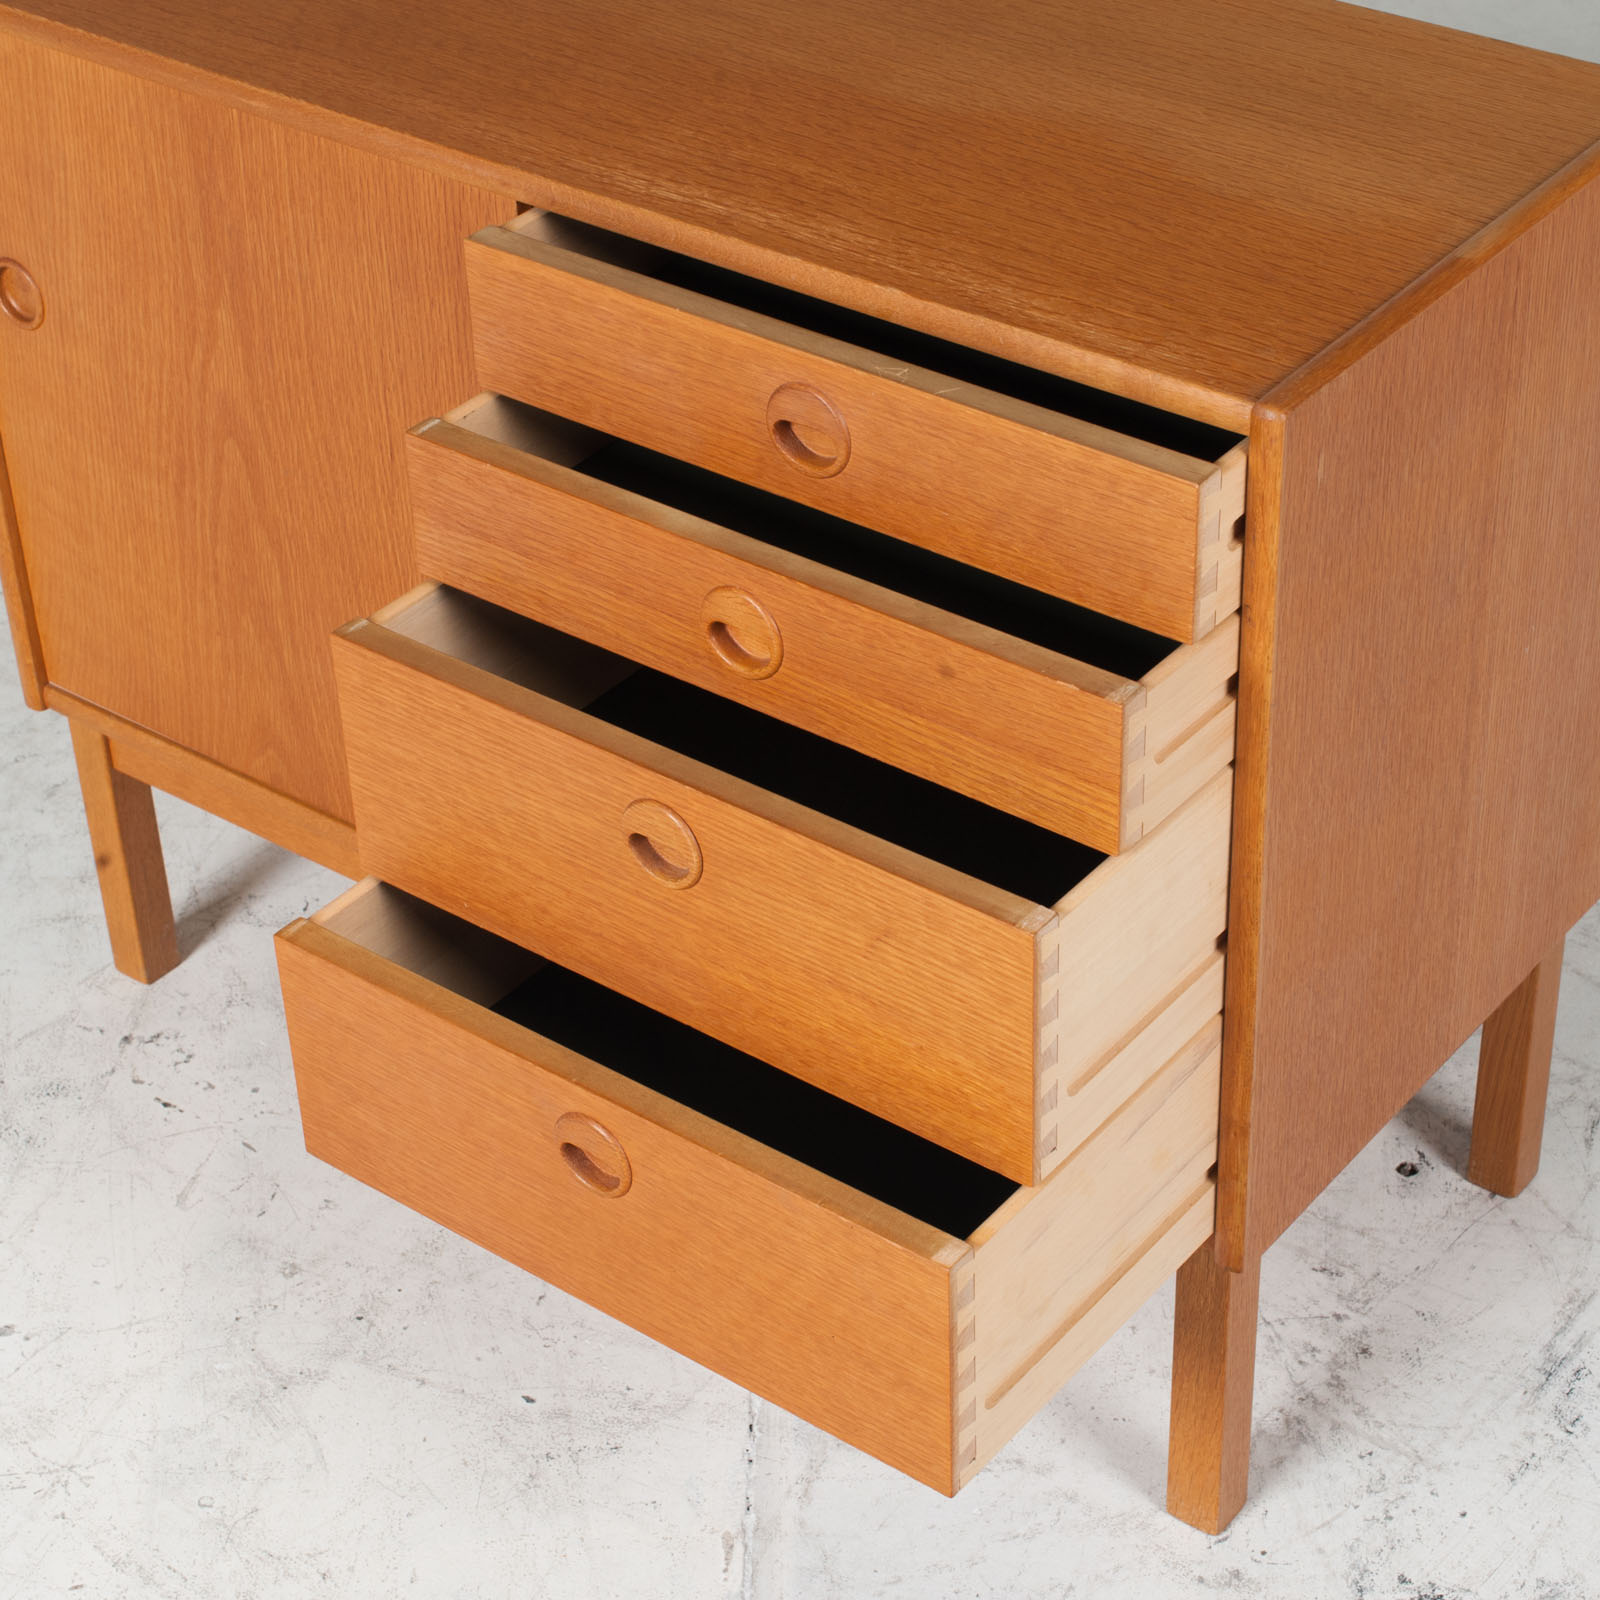 Cabient With Sliding Door And Drawers In Oak 1960s Denmark 07